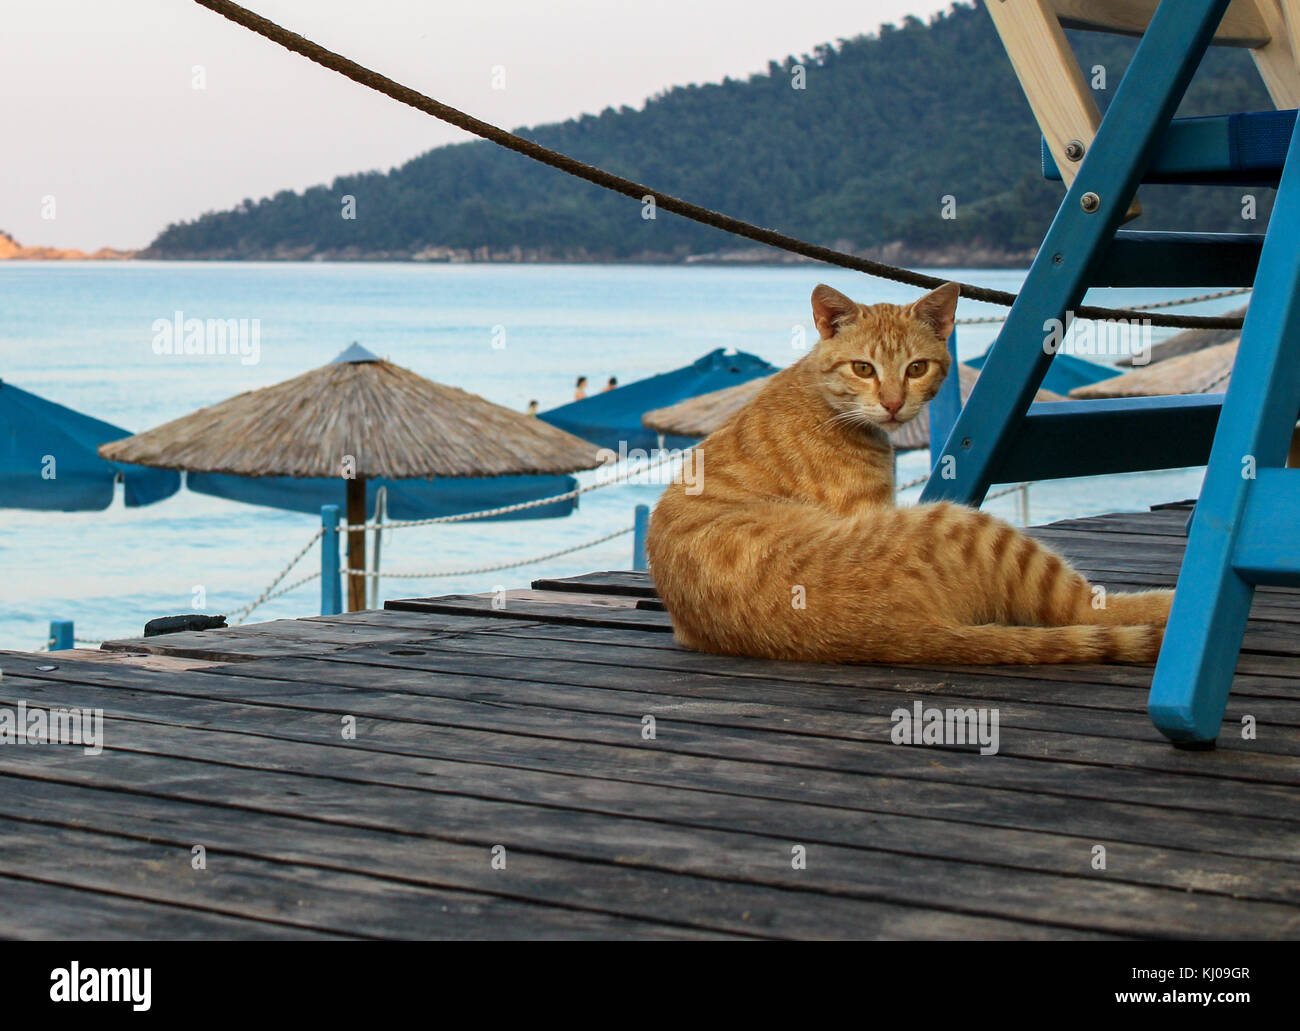 Cat at the beach - Stock Image